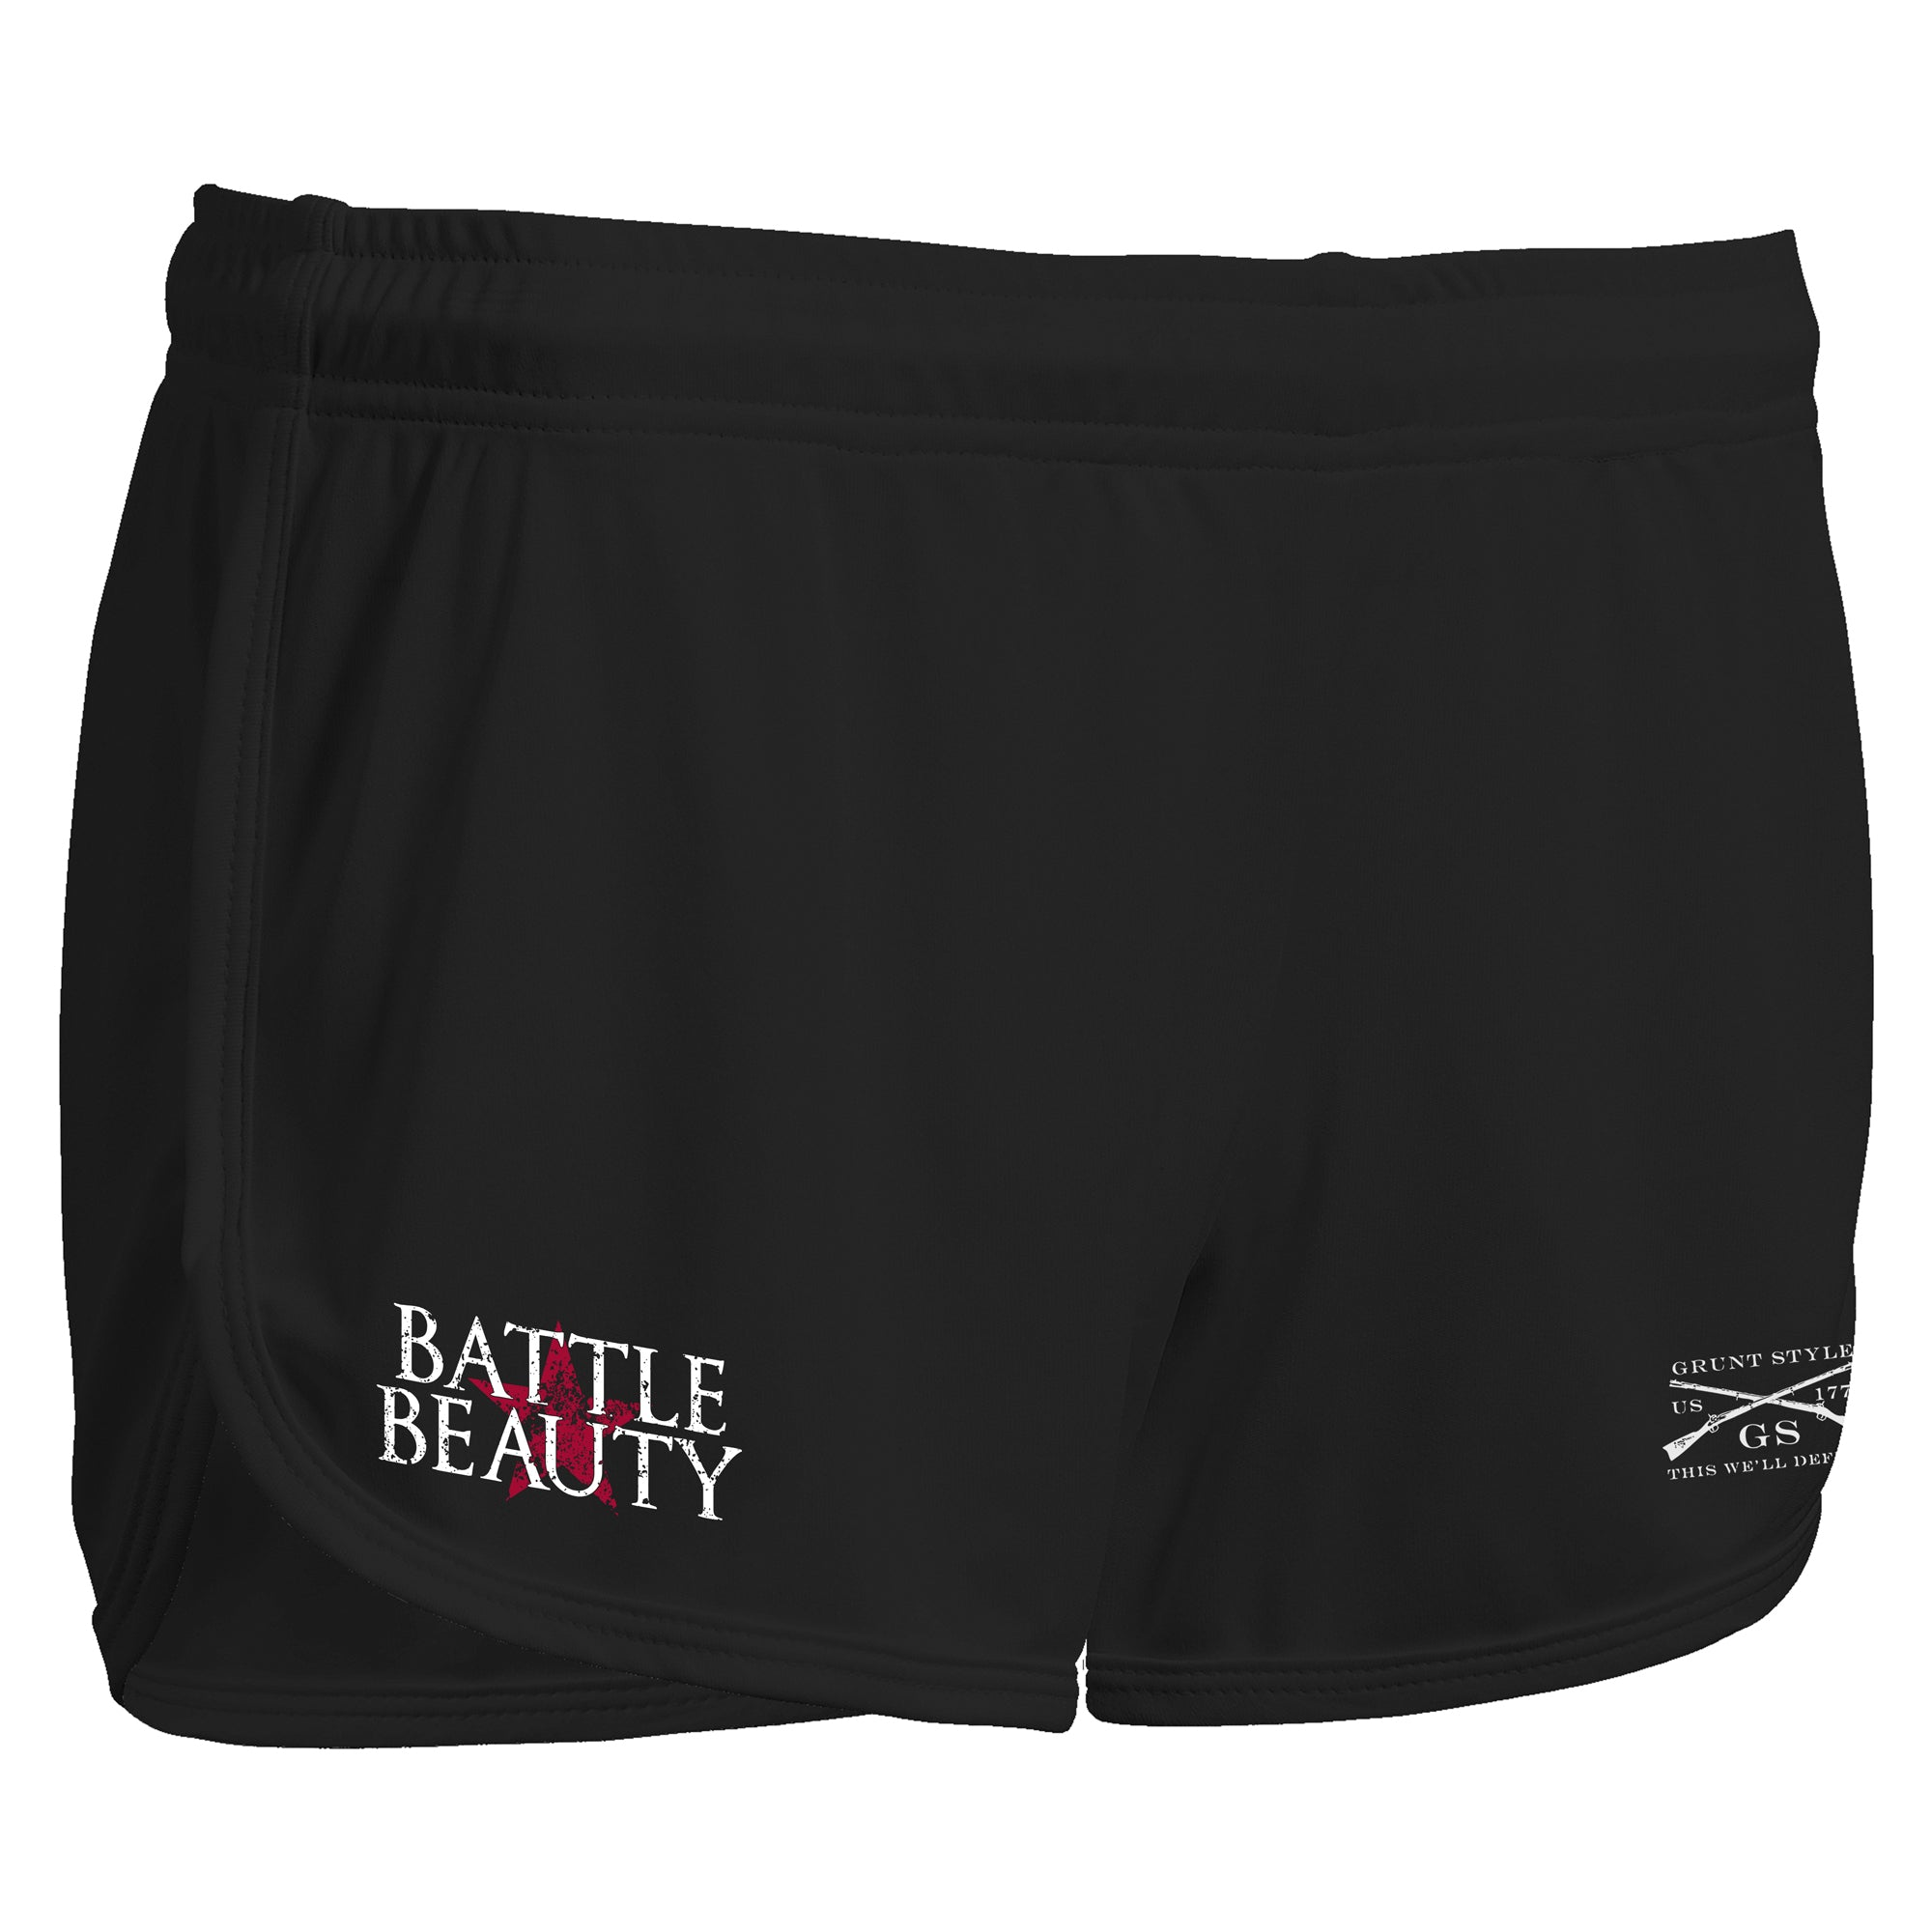 Battle Beauty Cupid Shorts